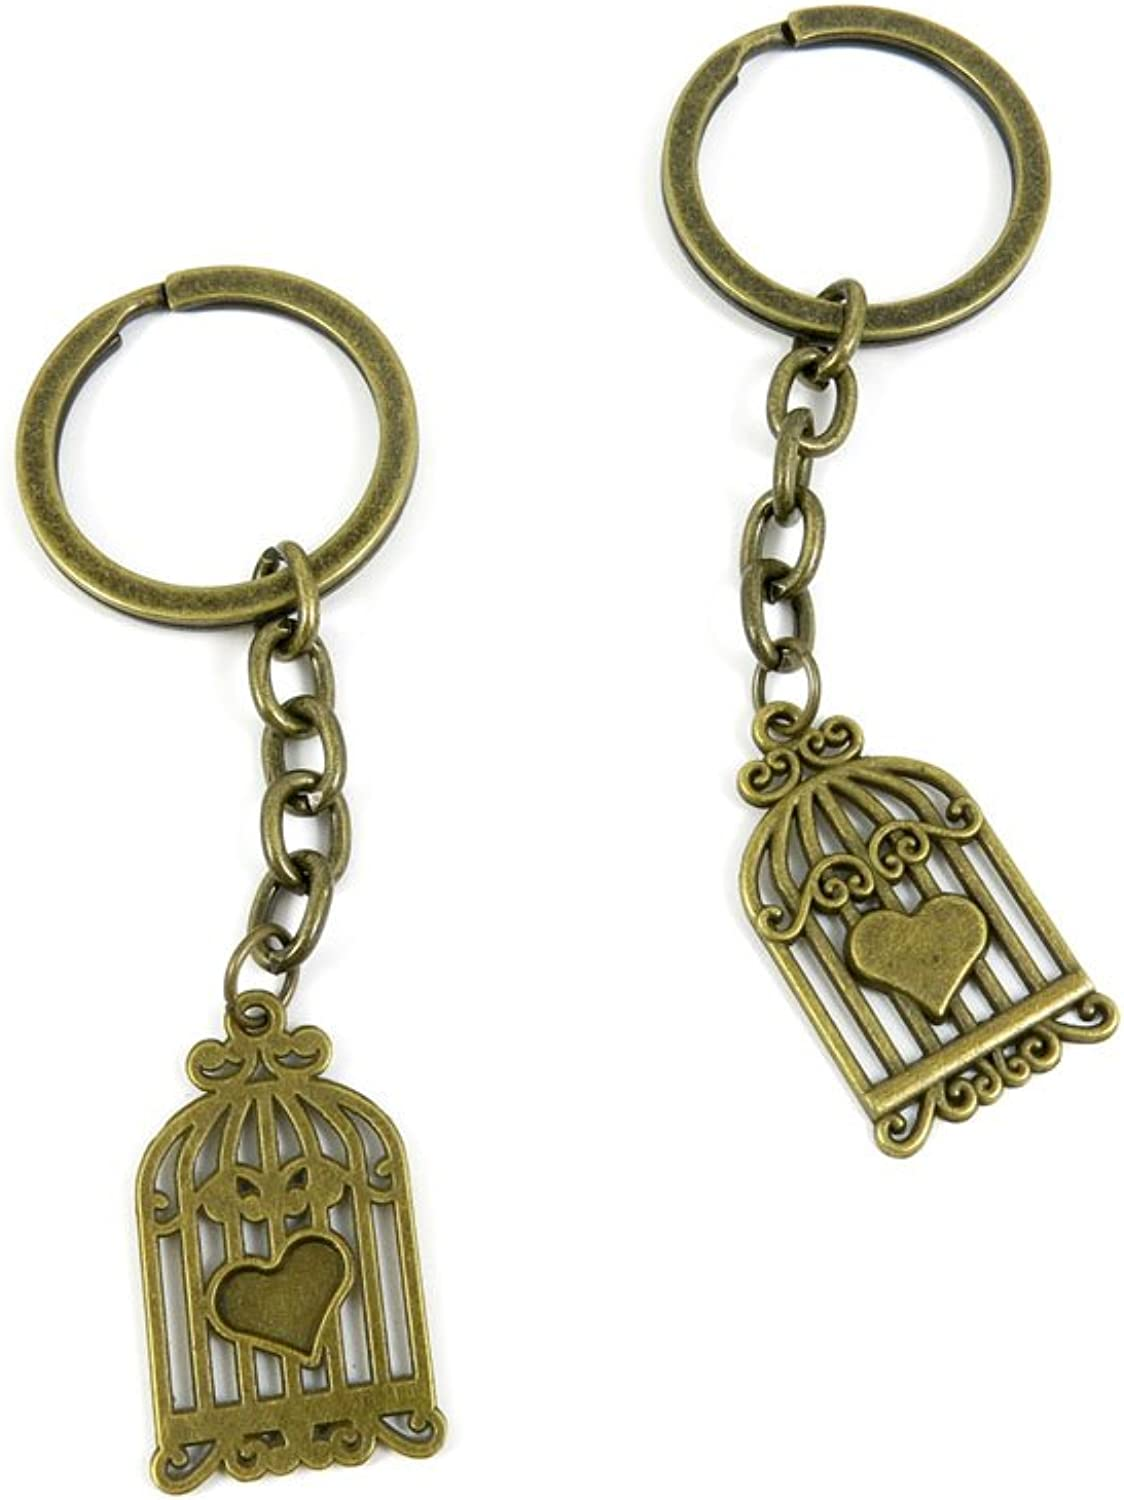 80 PCS Keyring Car Door Key Ring Tag Chain Keychain Wholesale Suppliers Charms Handmade M5MX3 Bird Cage Birdcage